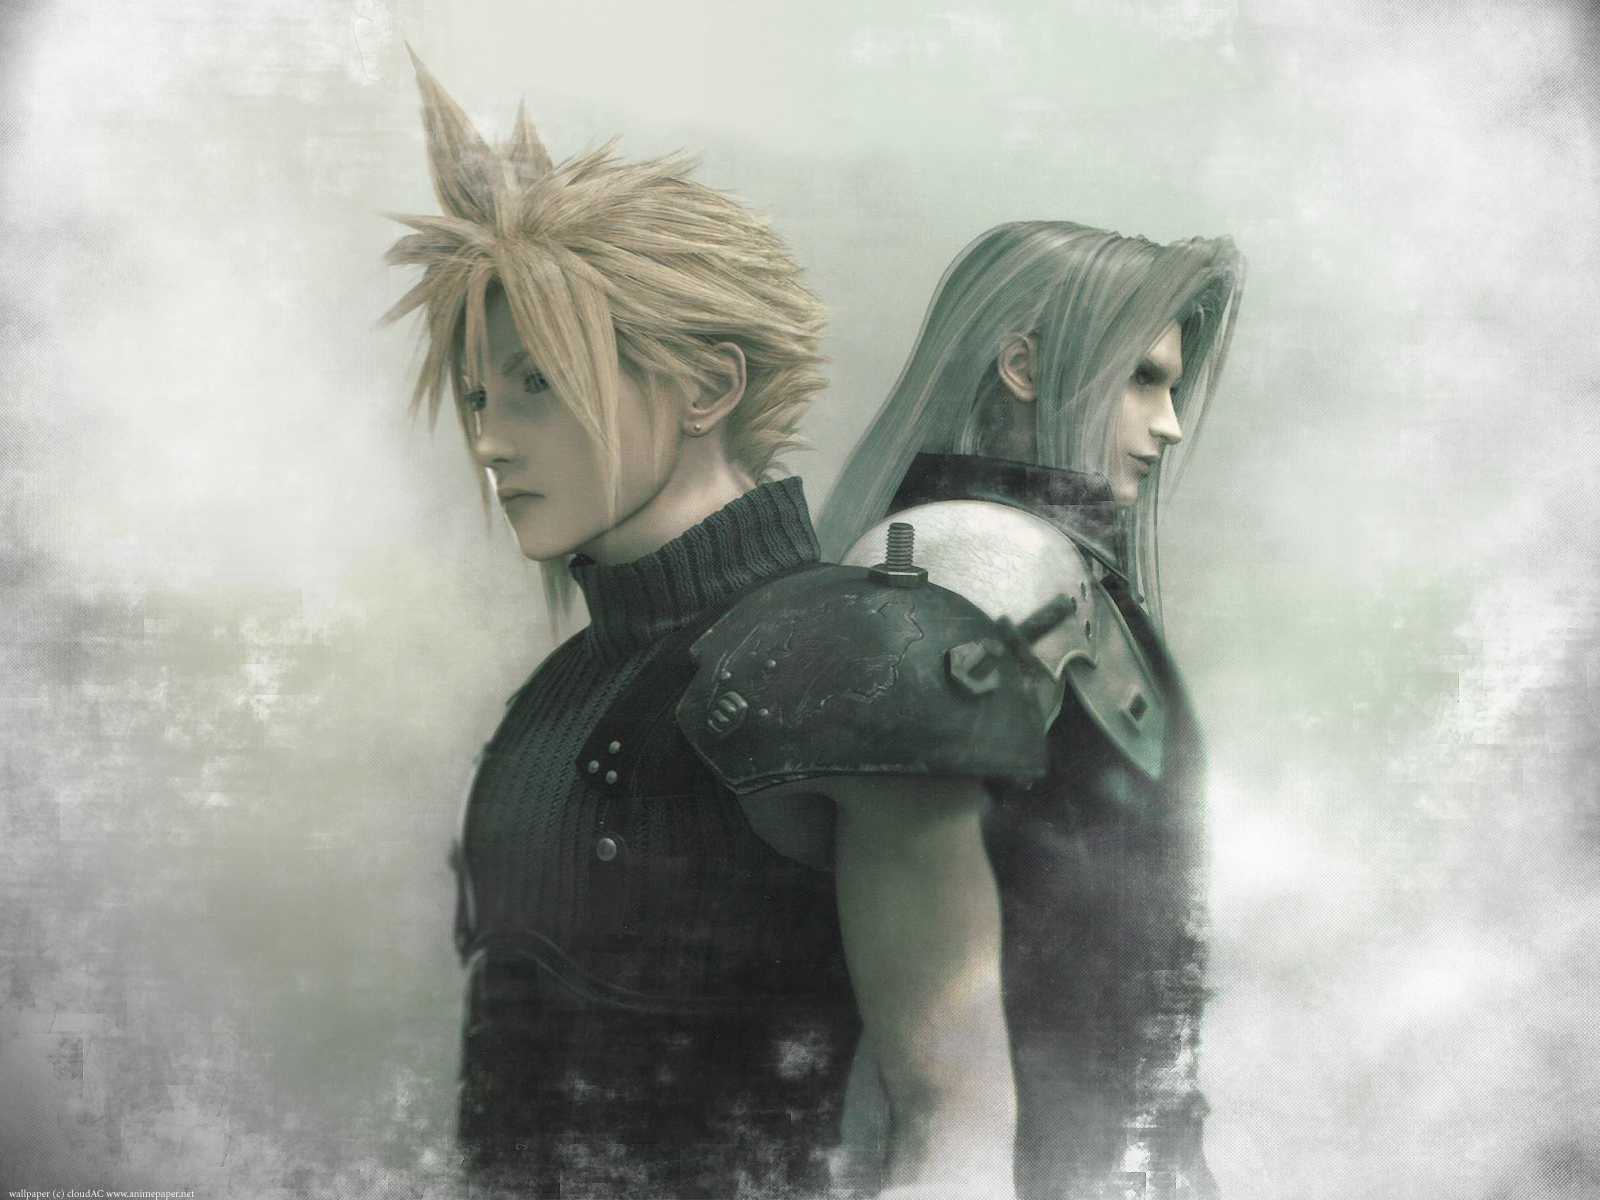 Sephiroth Wallpaper and Scan Gallery Minitokyo